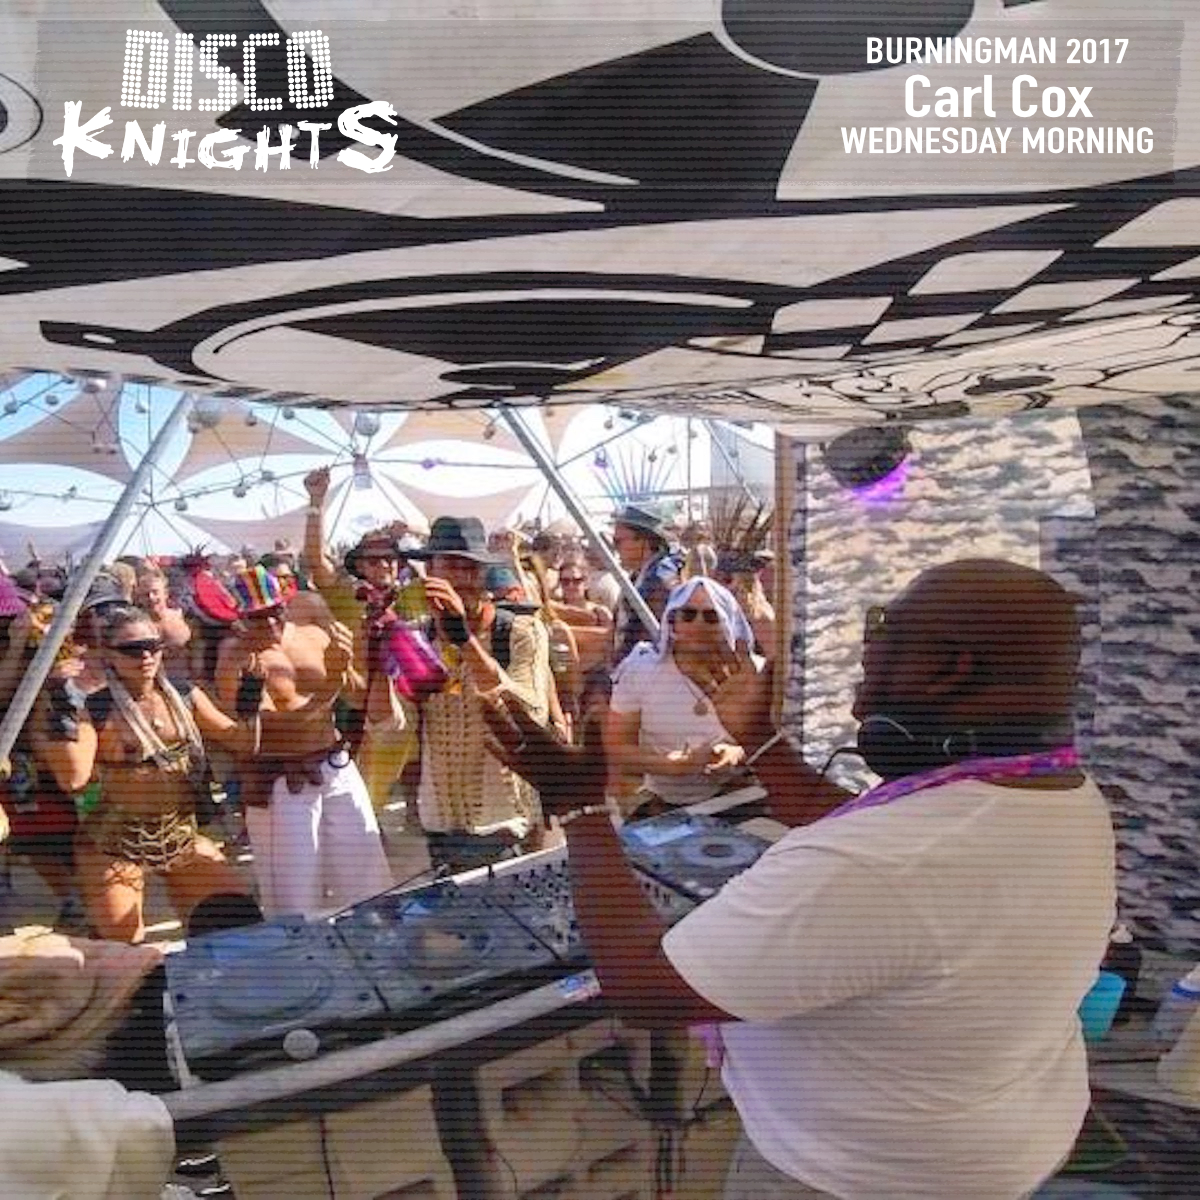 Carl Cox - Live at Disco Knights, Burning Man 2017 (Nevada, USA) [5 HOURS SET] - August 2017